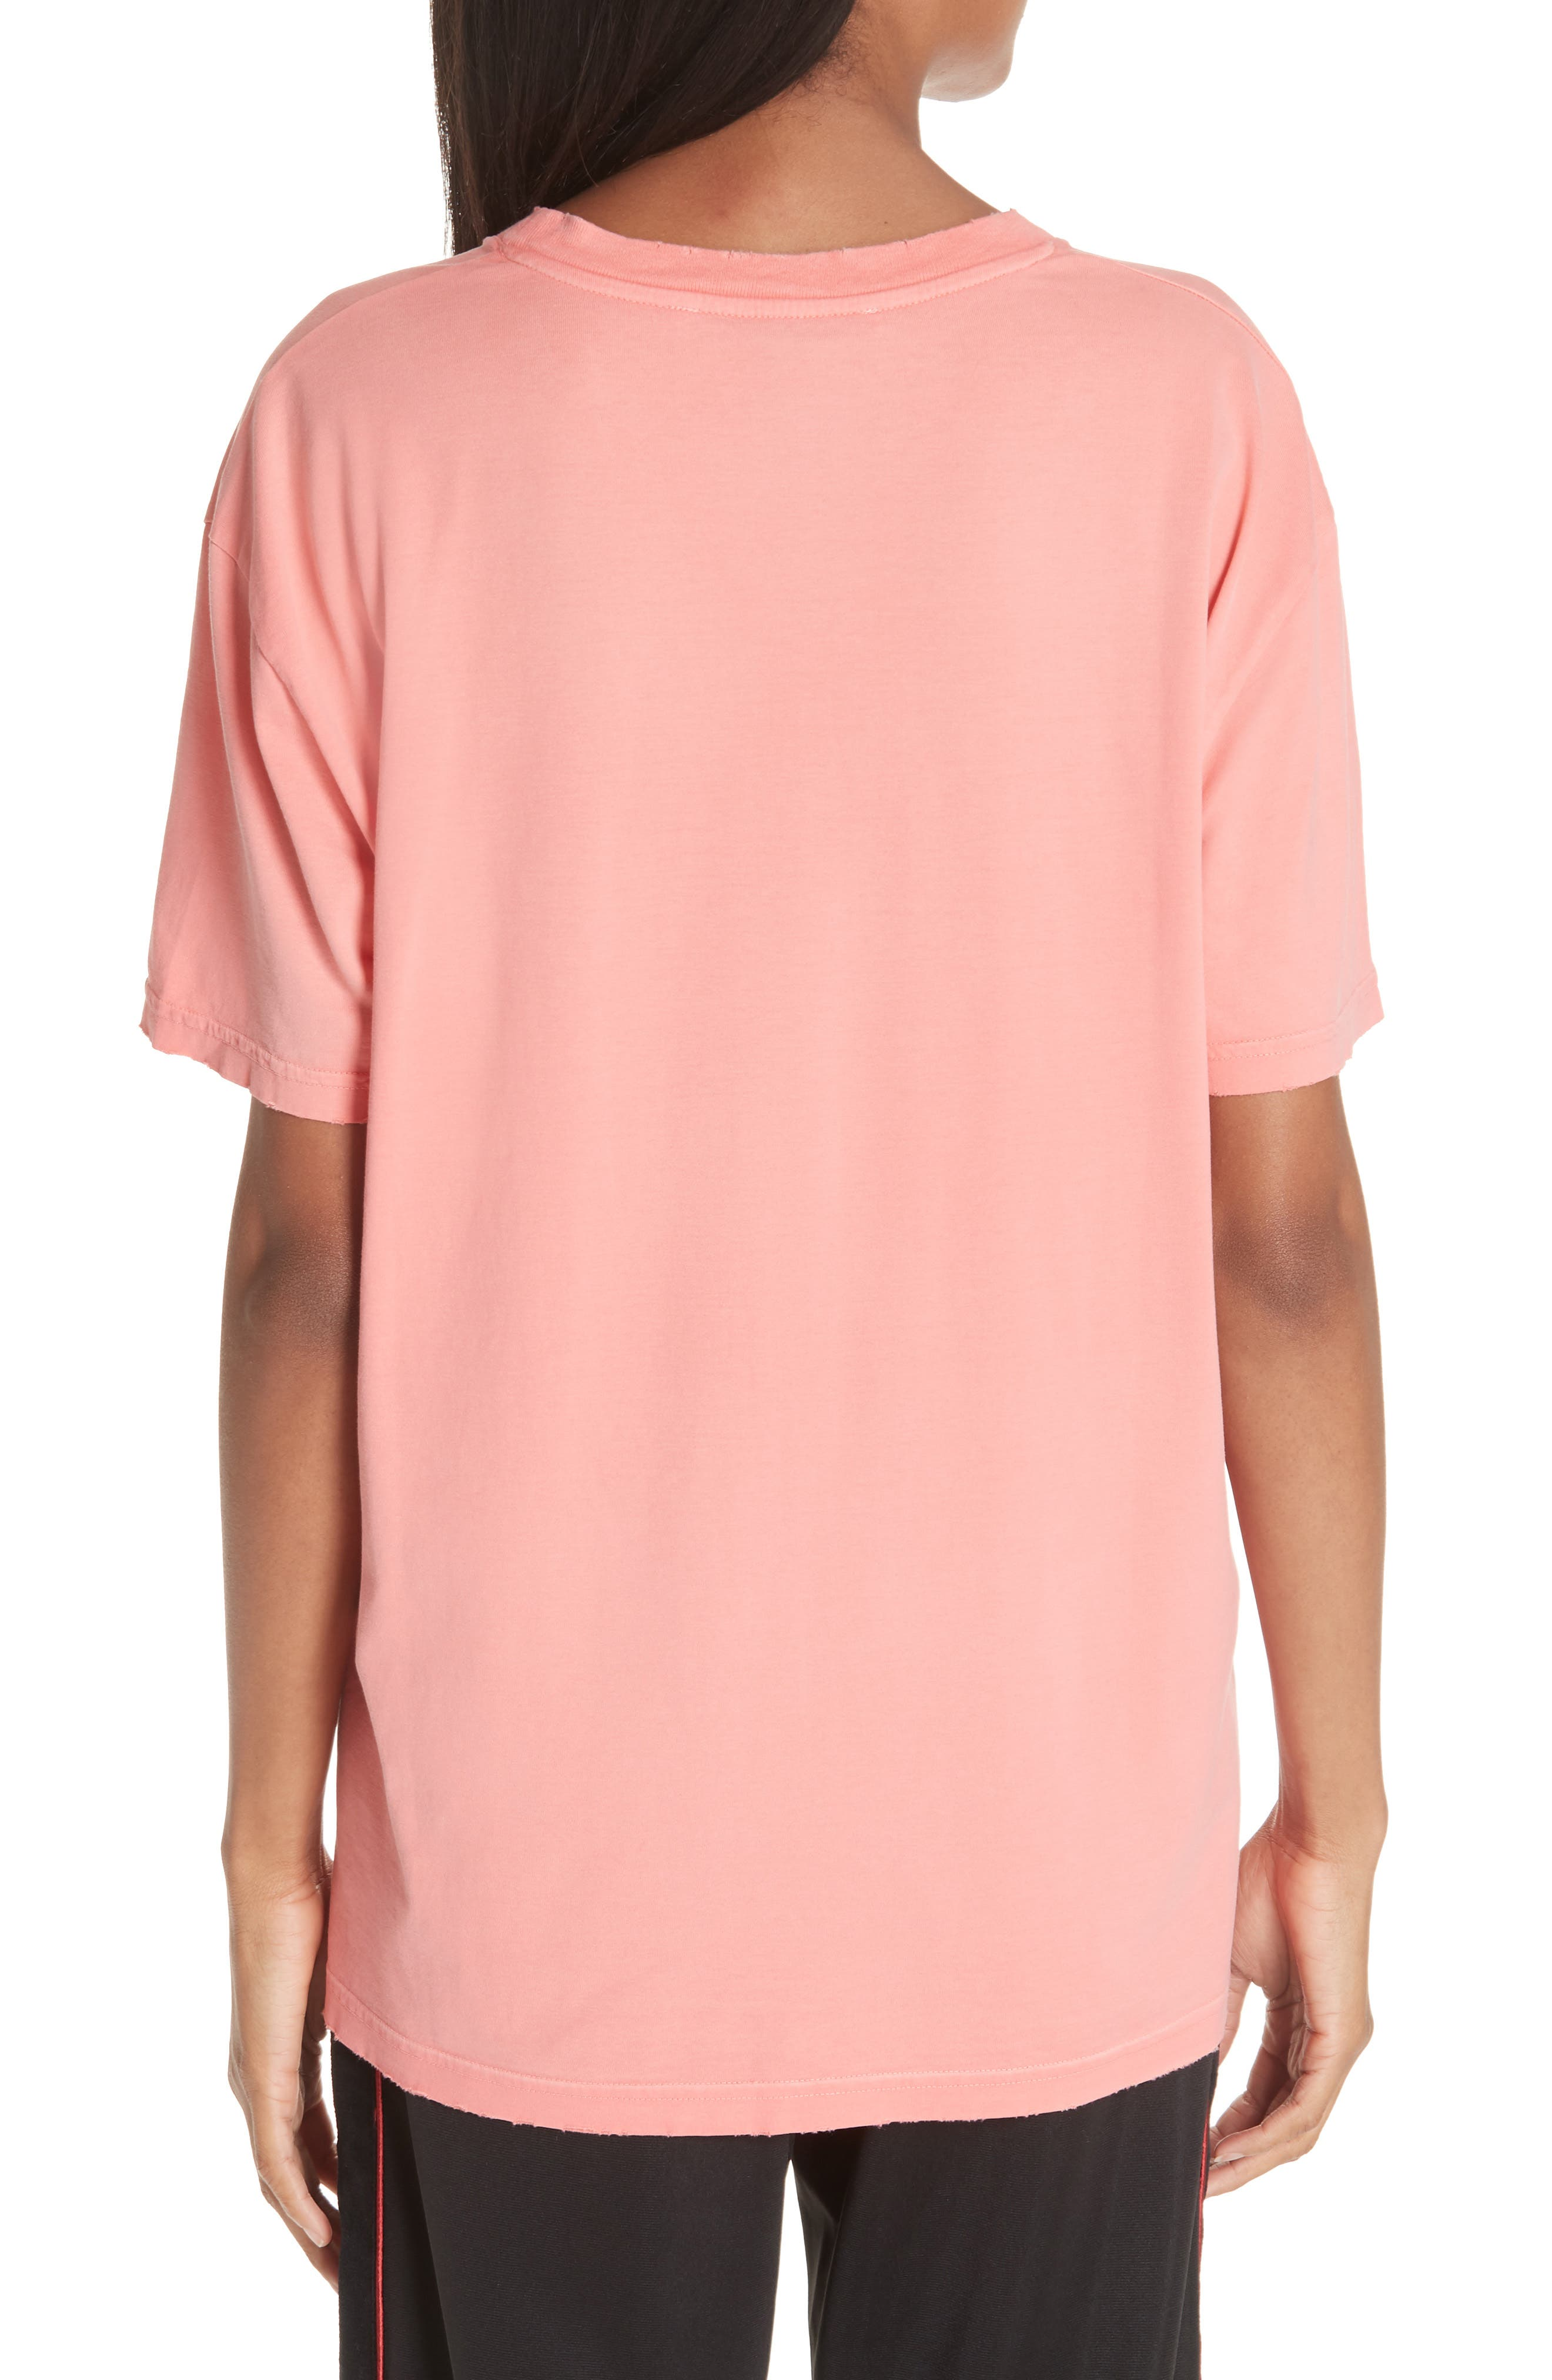 GIVENCHY,                             Distressed Logo Tee,                             Alternate thumbnail 2, color,                             CORAL